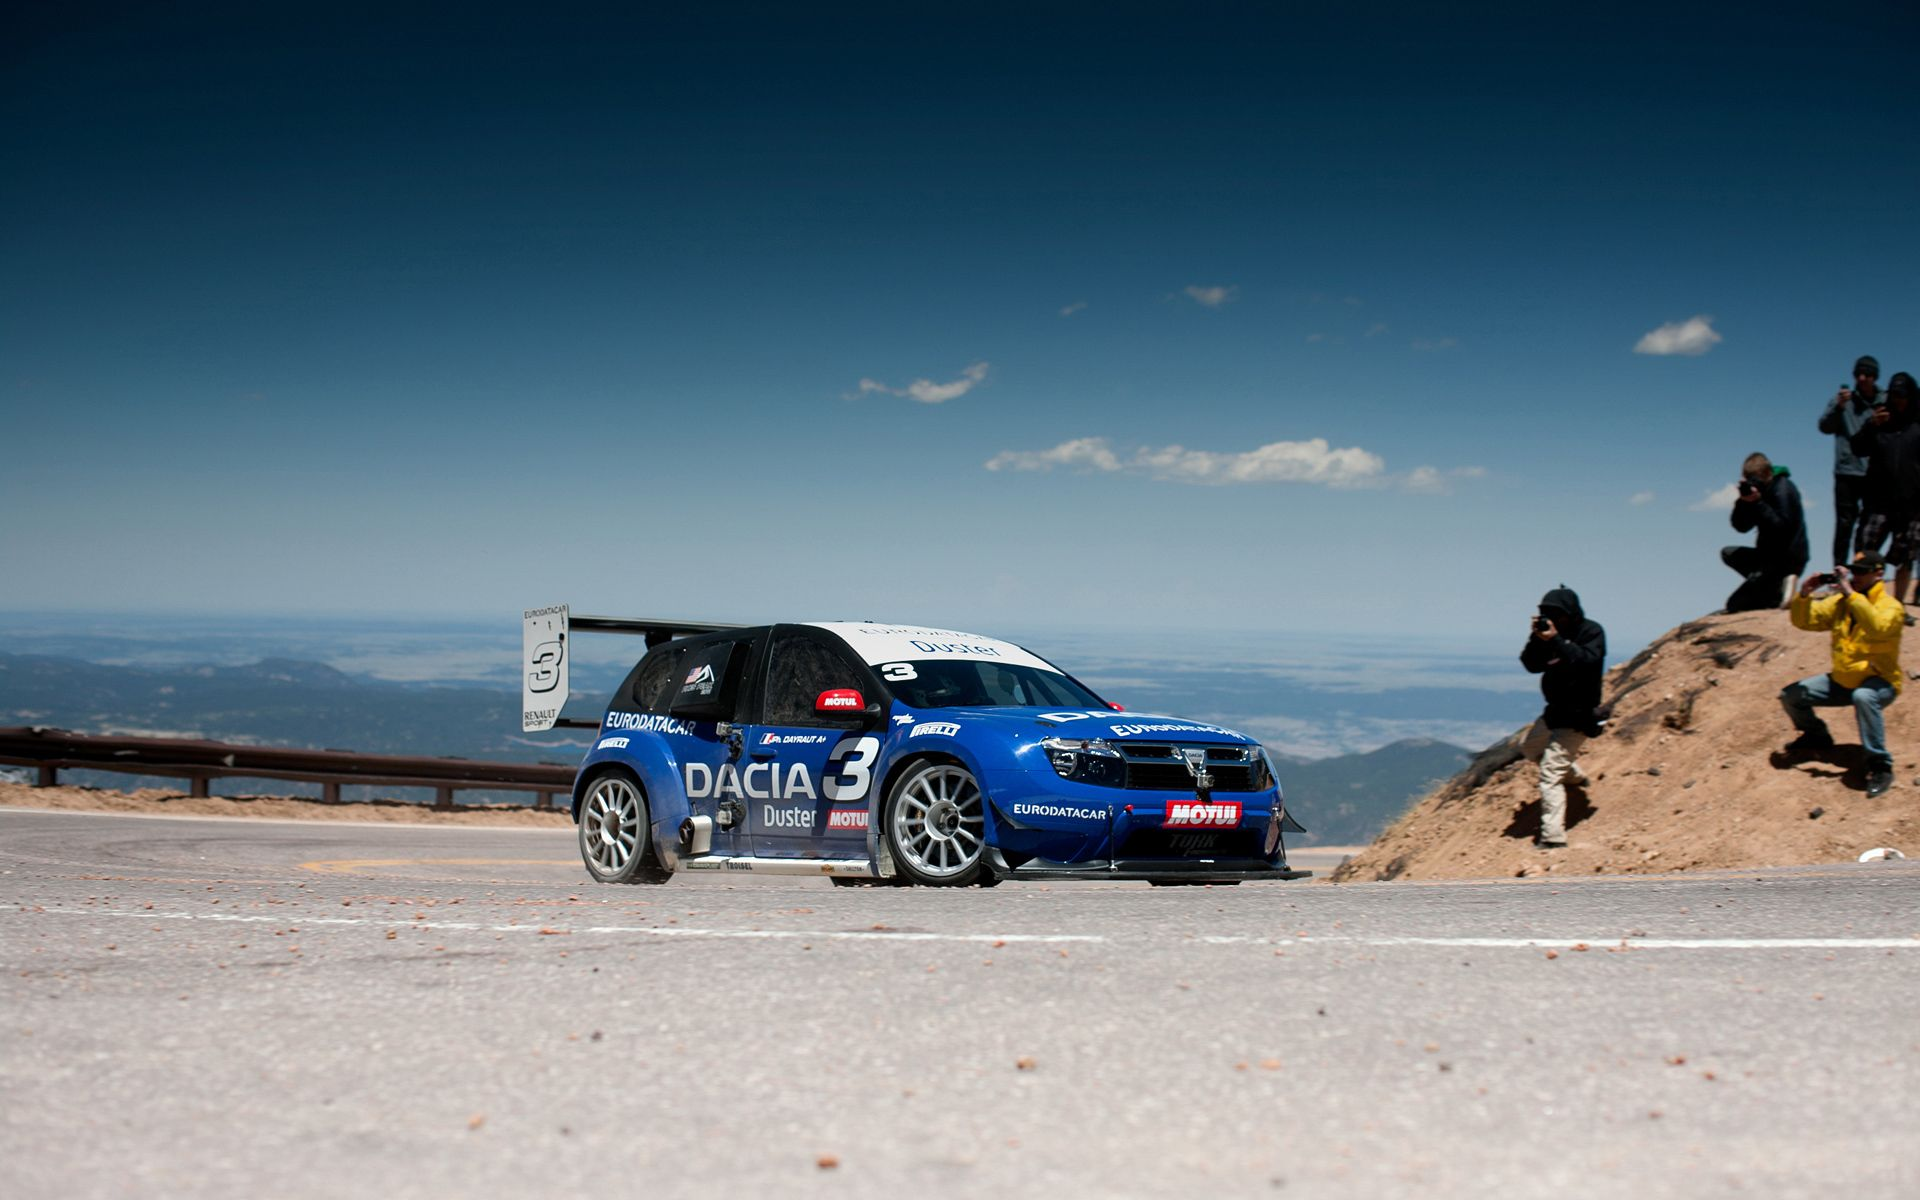 Dacia Duster Euro Tuning Car Wallpapers Concept Cars Pikes Peak